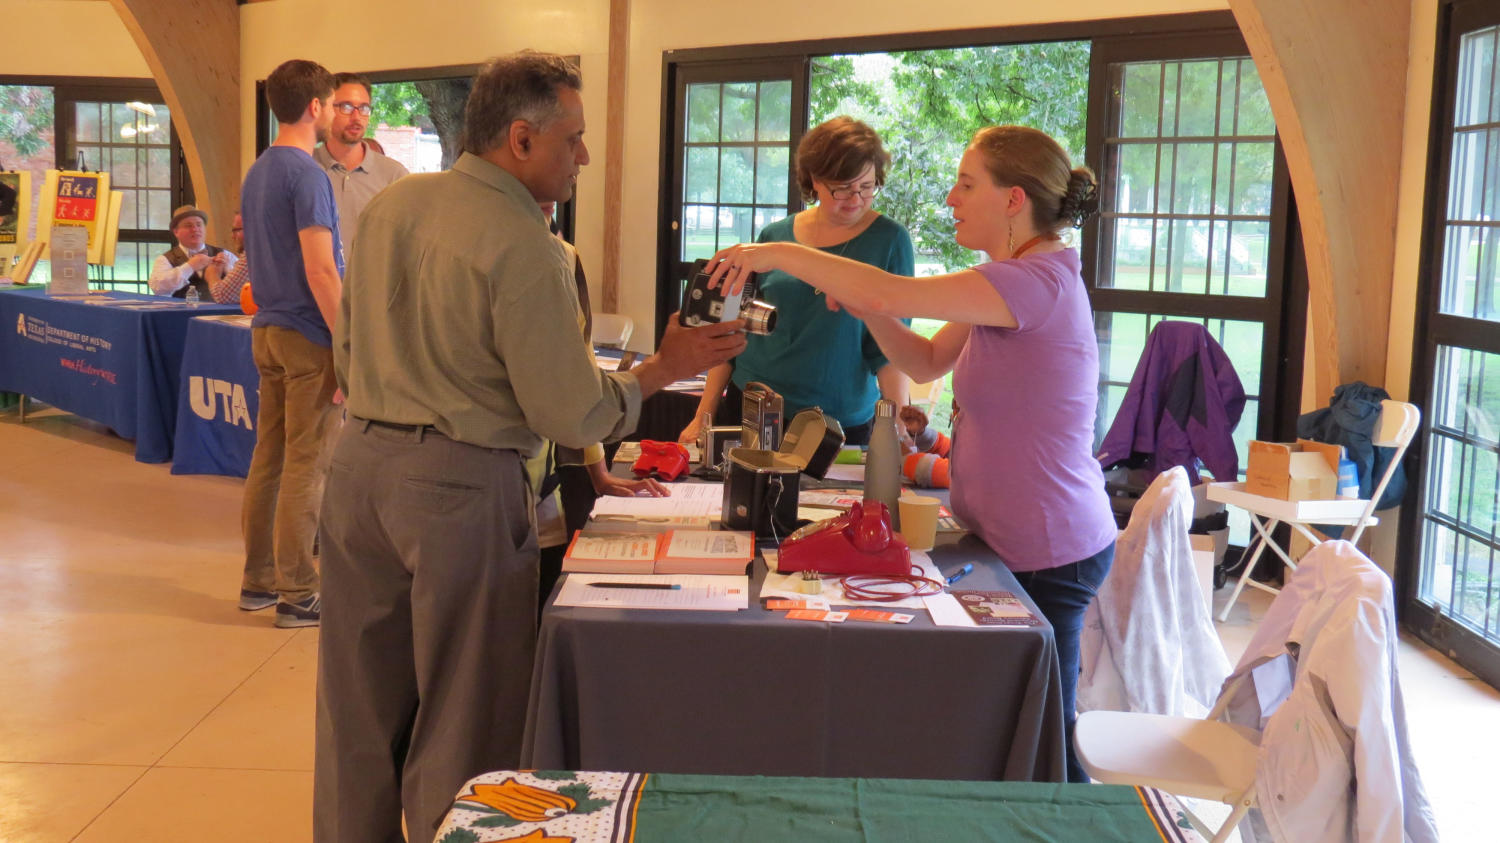 [Visitors looking at camera], Photograph of visitors looking at old cameras at the Sixth Floor Museums booth table during the DFW Archives Bazaar at the Dallas Heritage Village Pavilion. Stephanie Allen-Givens is helping them and Lindsey Richardson is further back.,